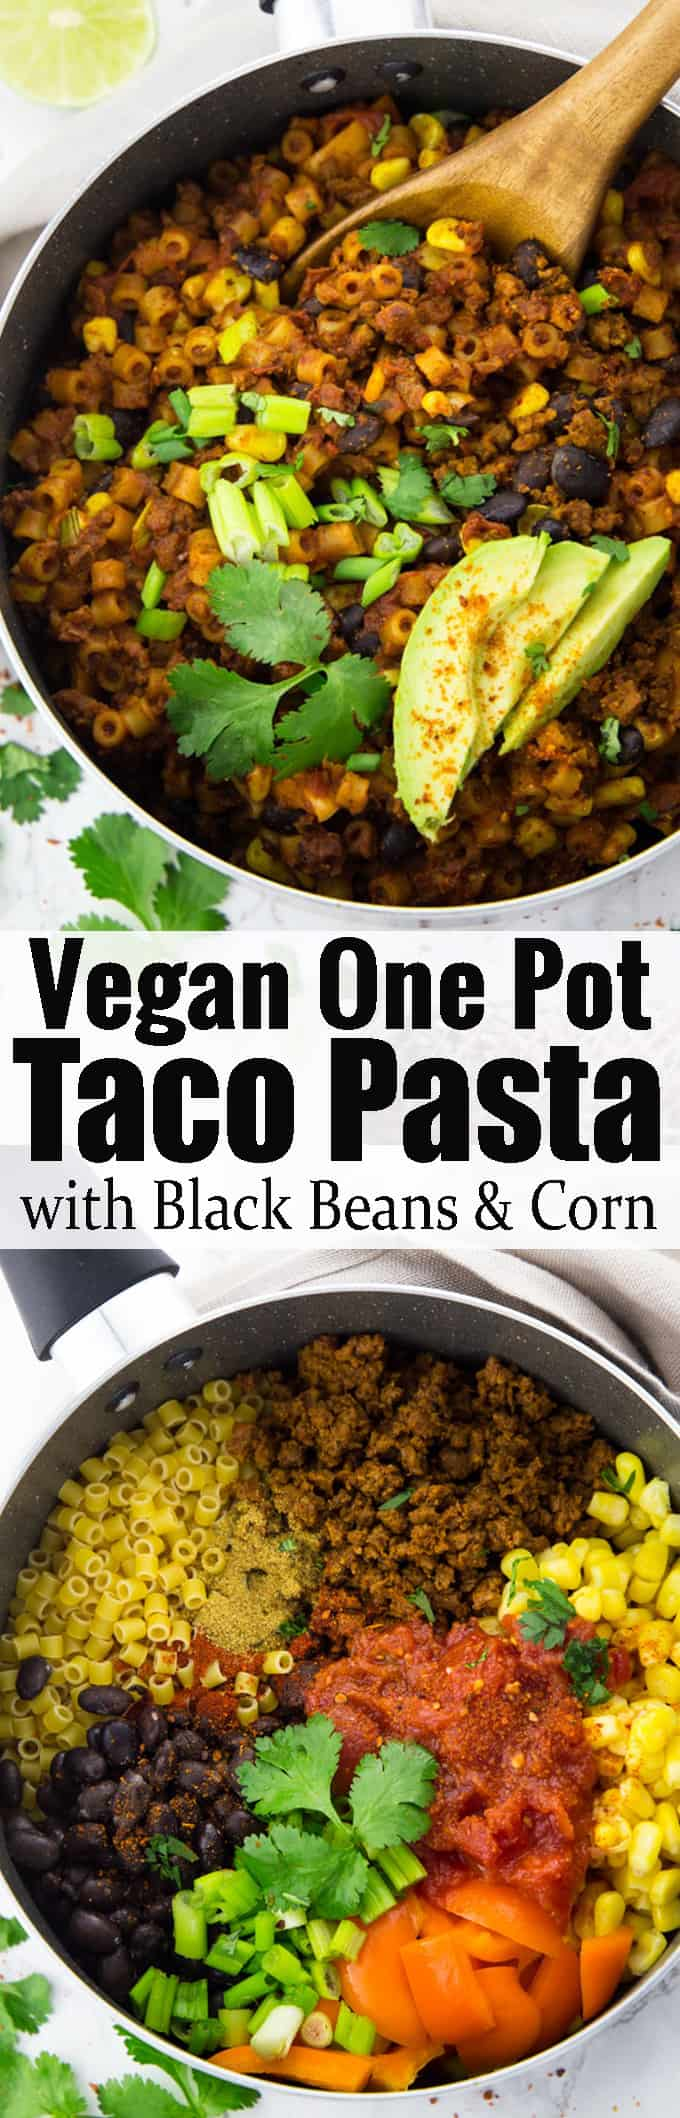 This one pot taco pasta is the perfect vegan weeknight meal! Vegan dinner at its best! It's super easy to make and packed with protein. For more easy vegan recipes check out my blog veganheaven.org! #vegan #onepotpasta #dinnerideas #vegetarian